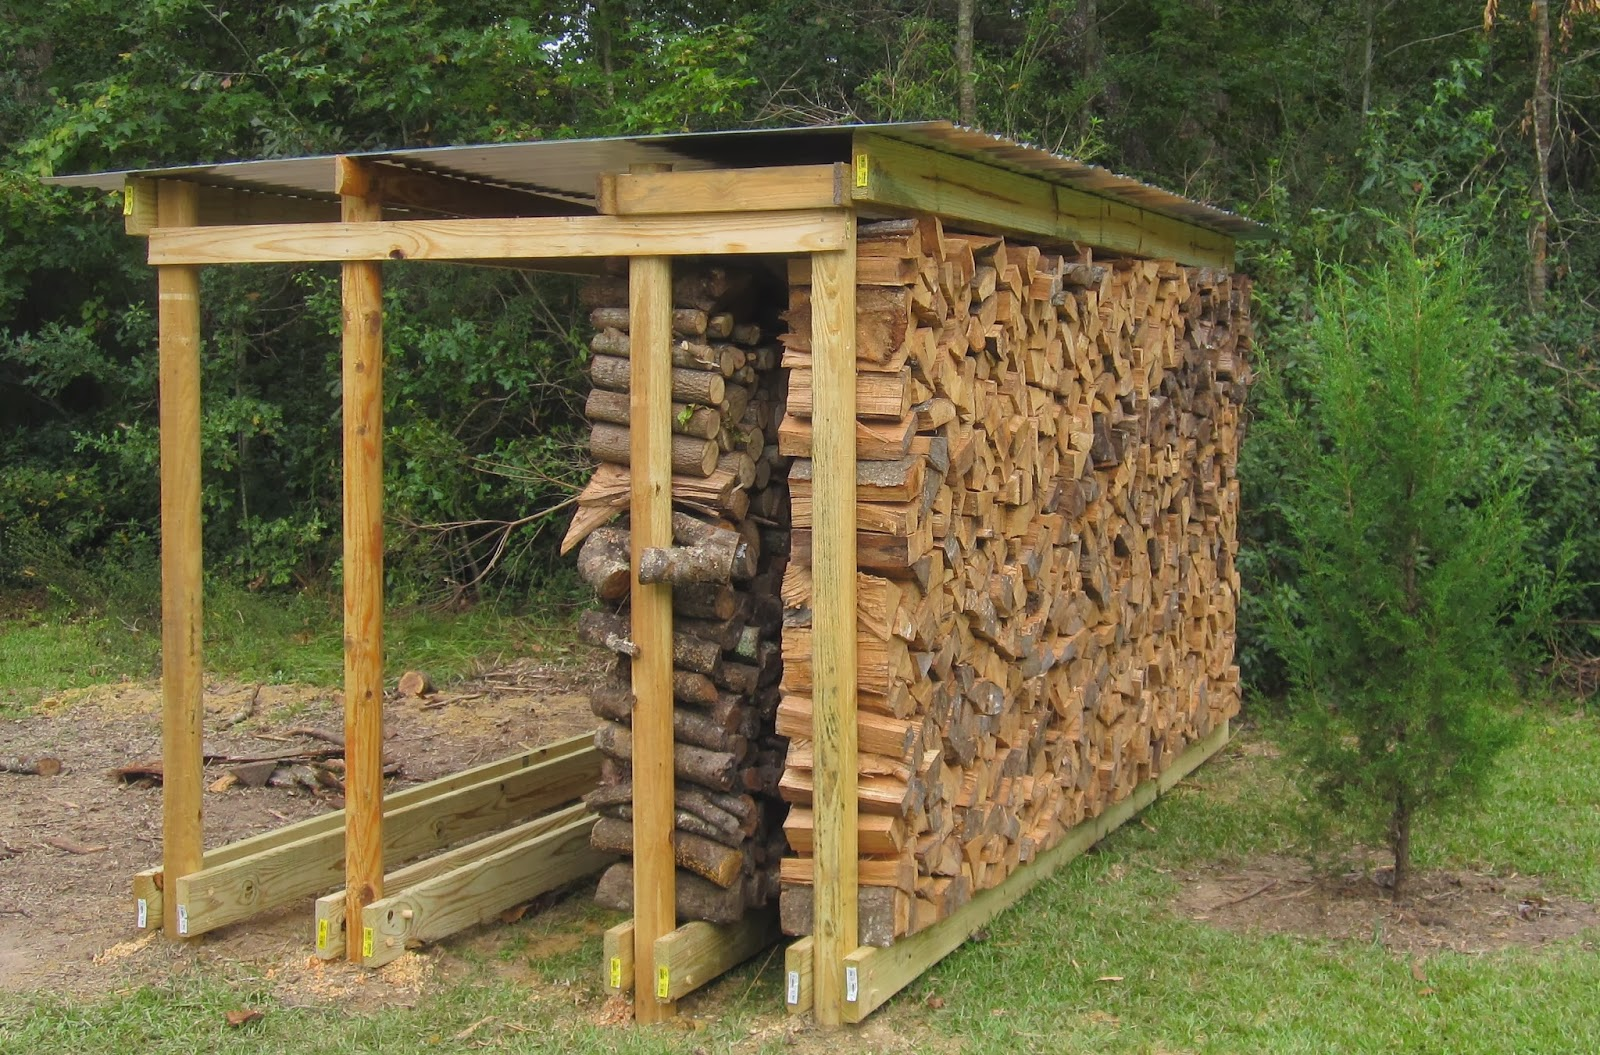 Covered Firewood Rack Plans Plans post and beam barn plans | $*# MEN ...